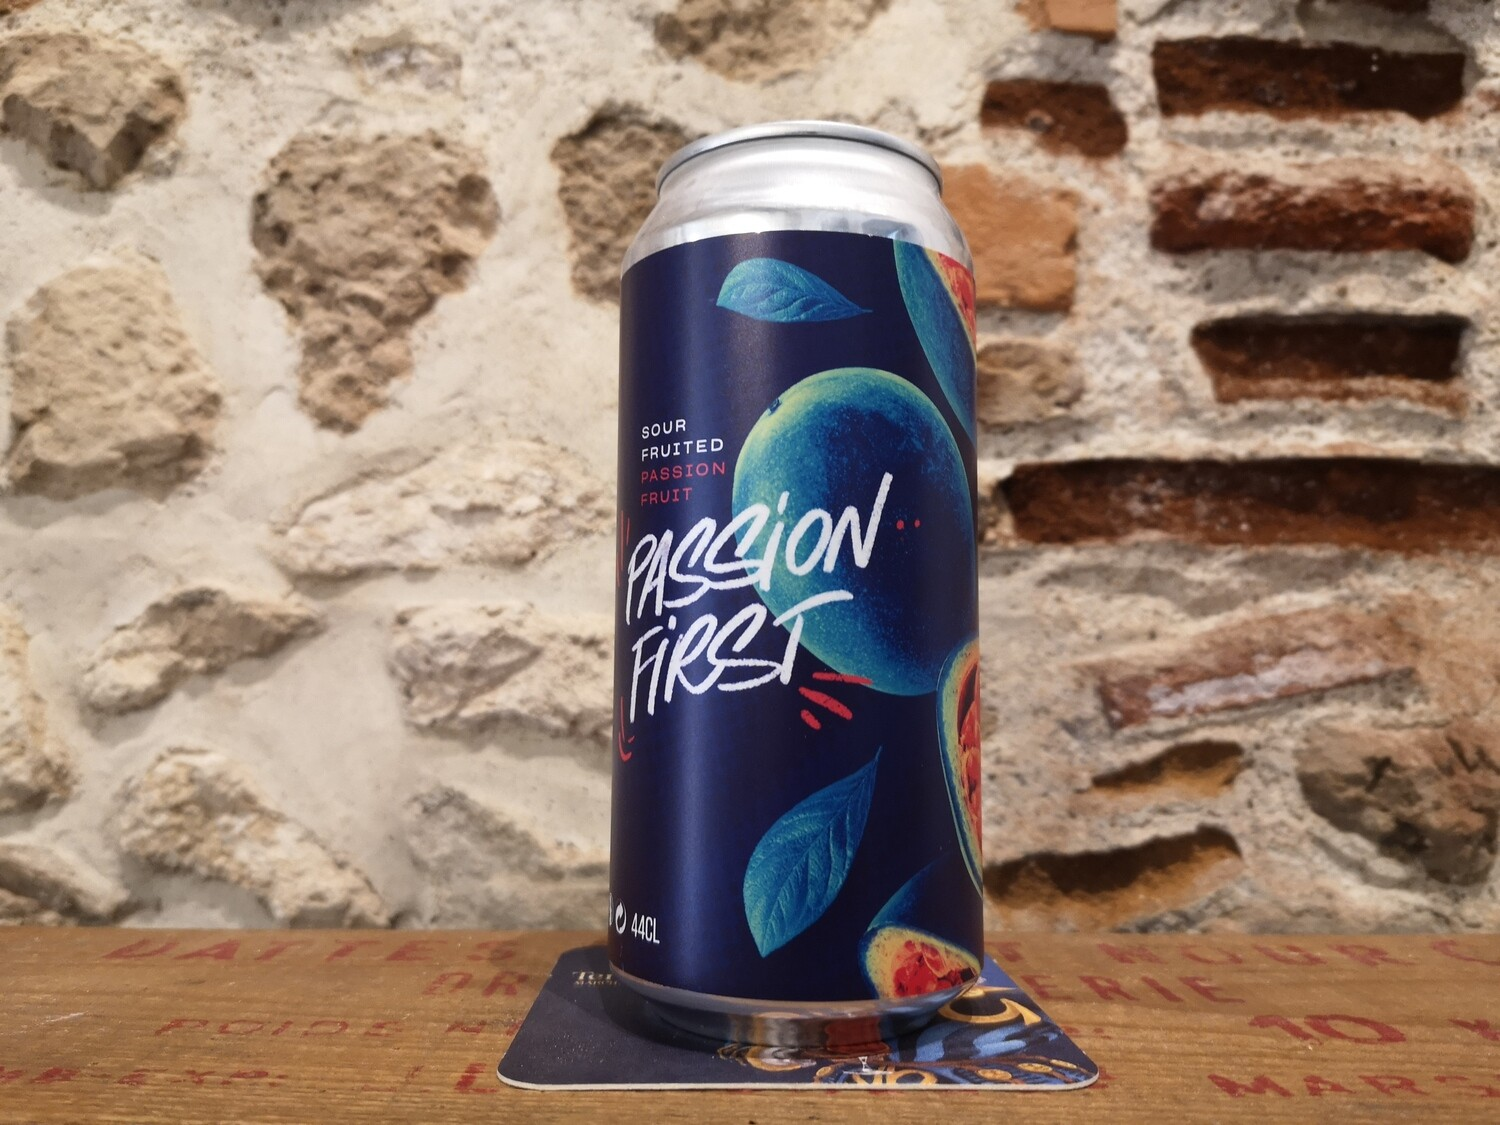 Passion First, Sour passion 6%